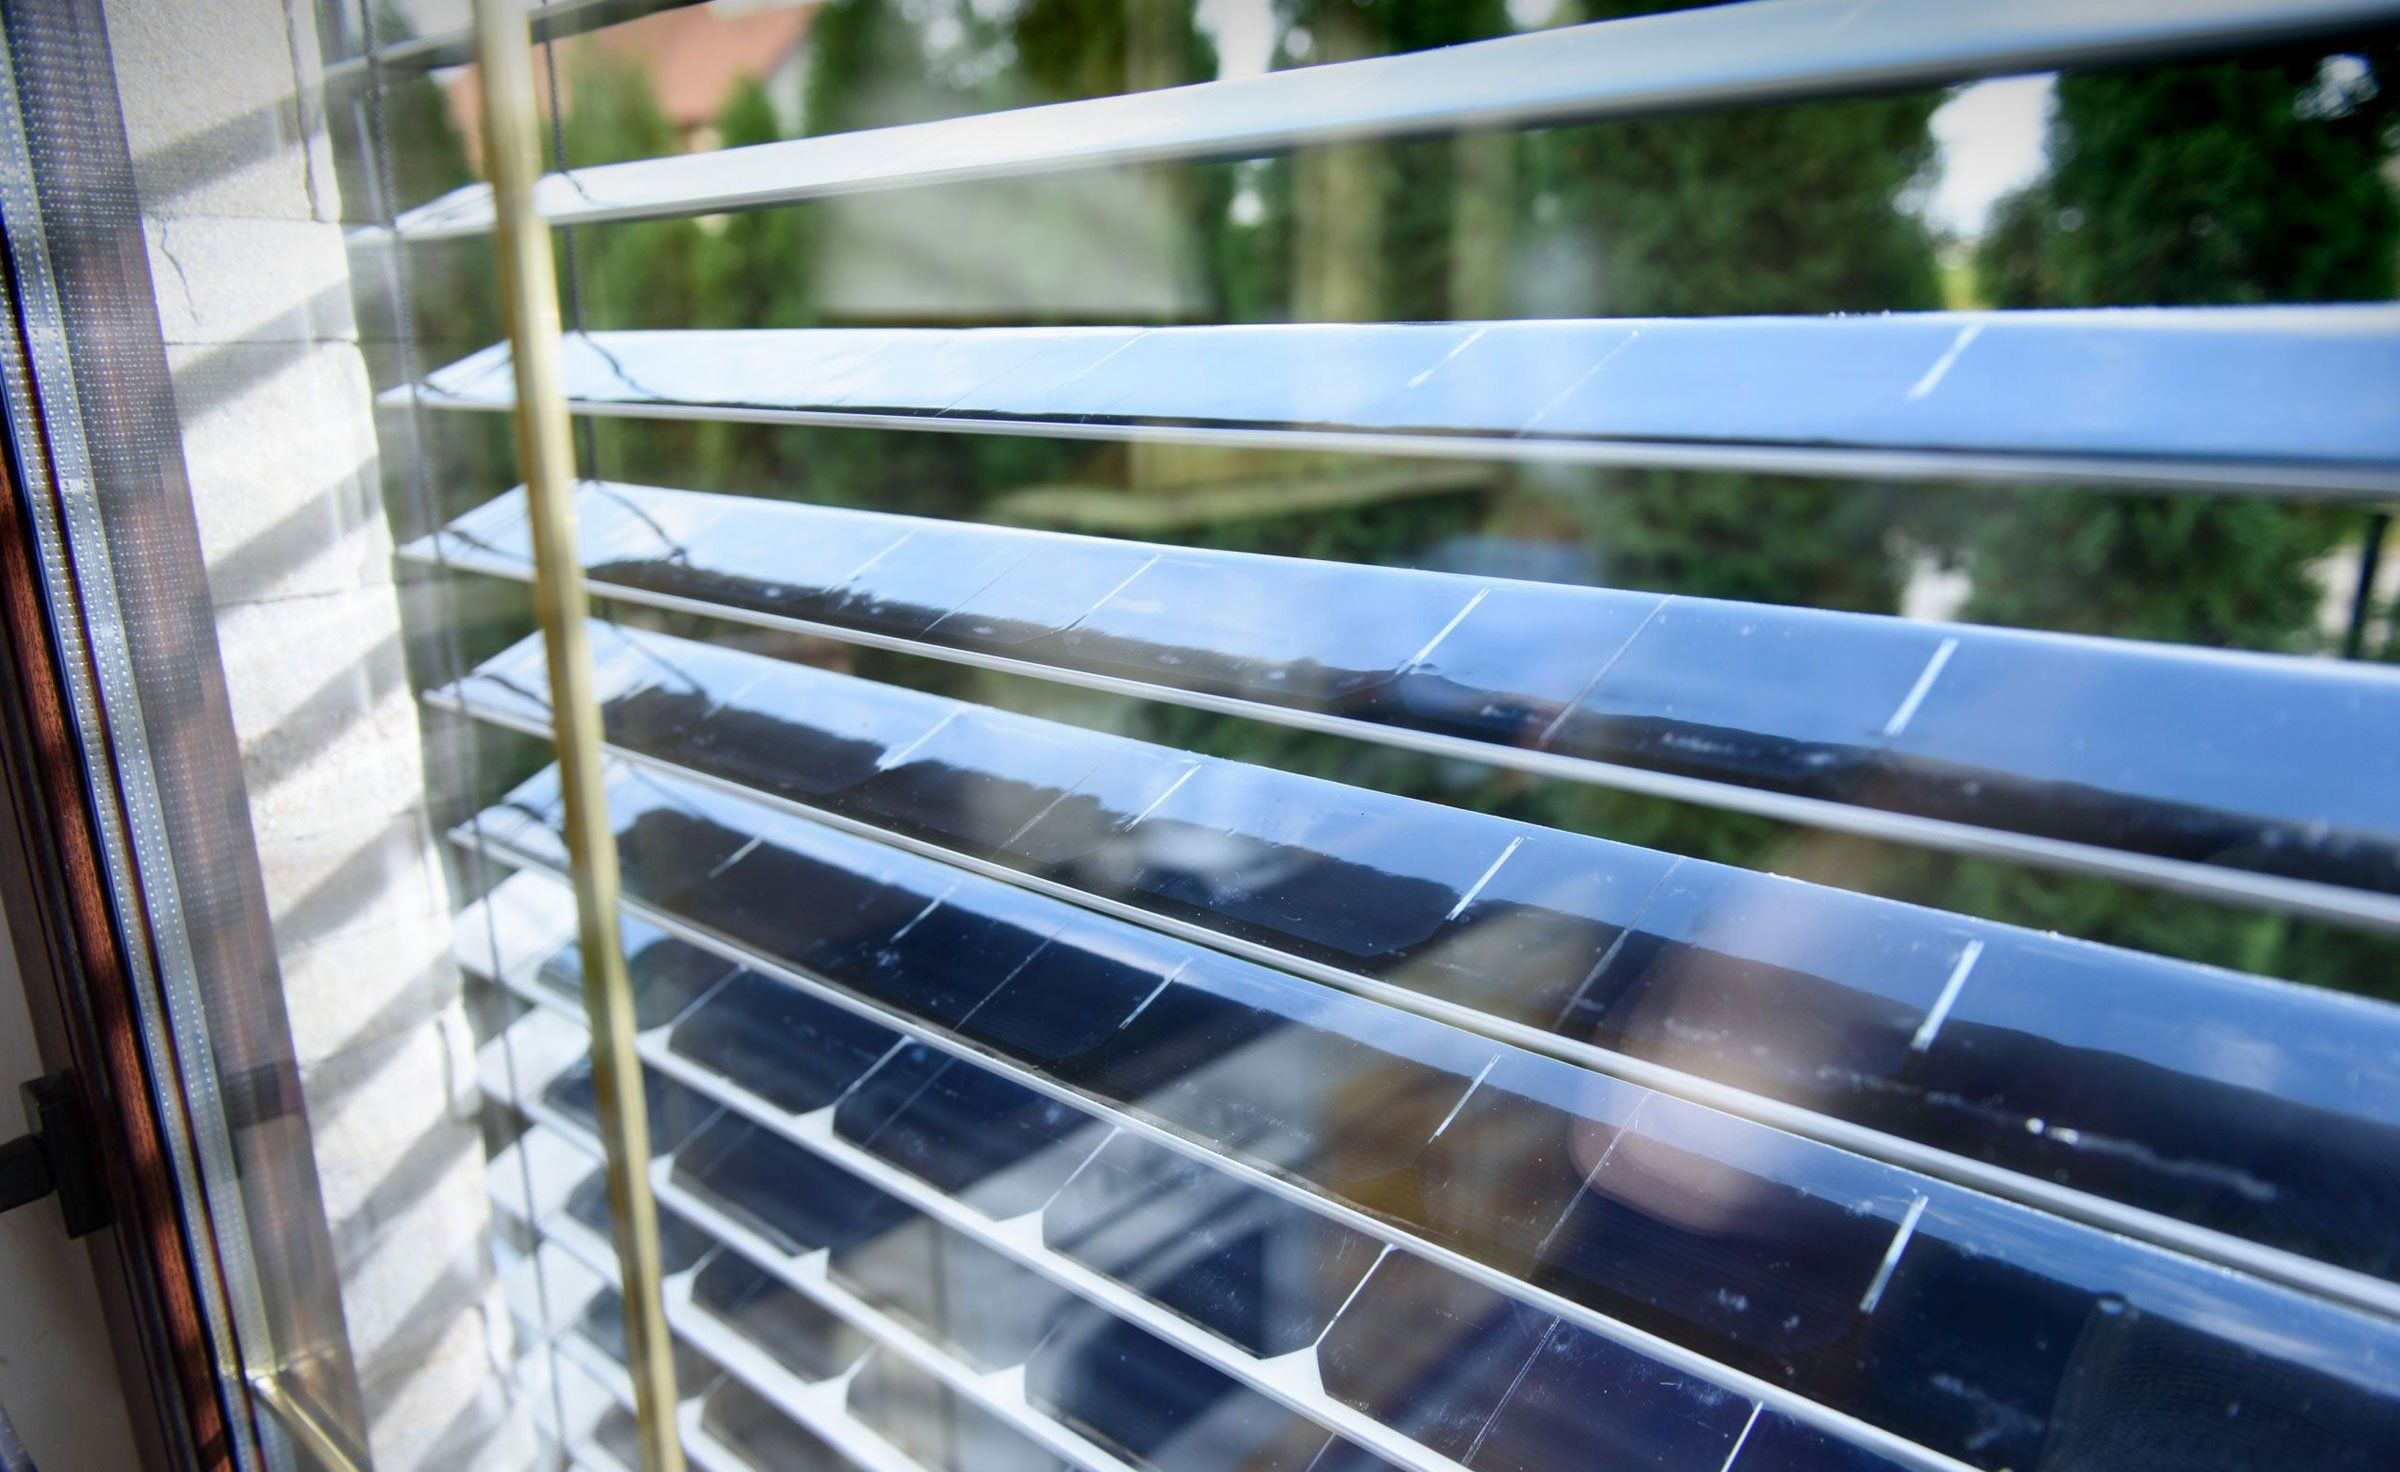 SolarGaps Solar Blinds Best solar panels, Blinds, Solar